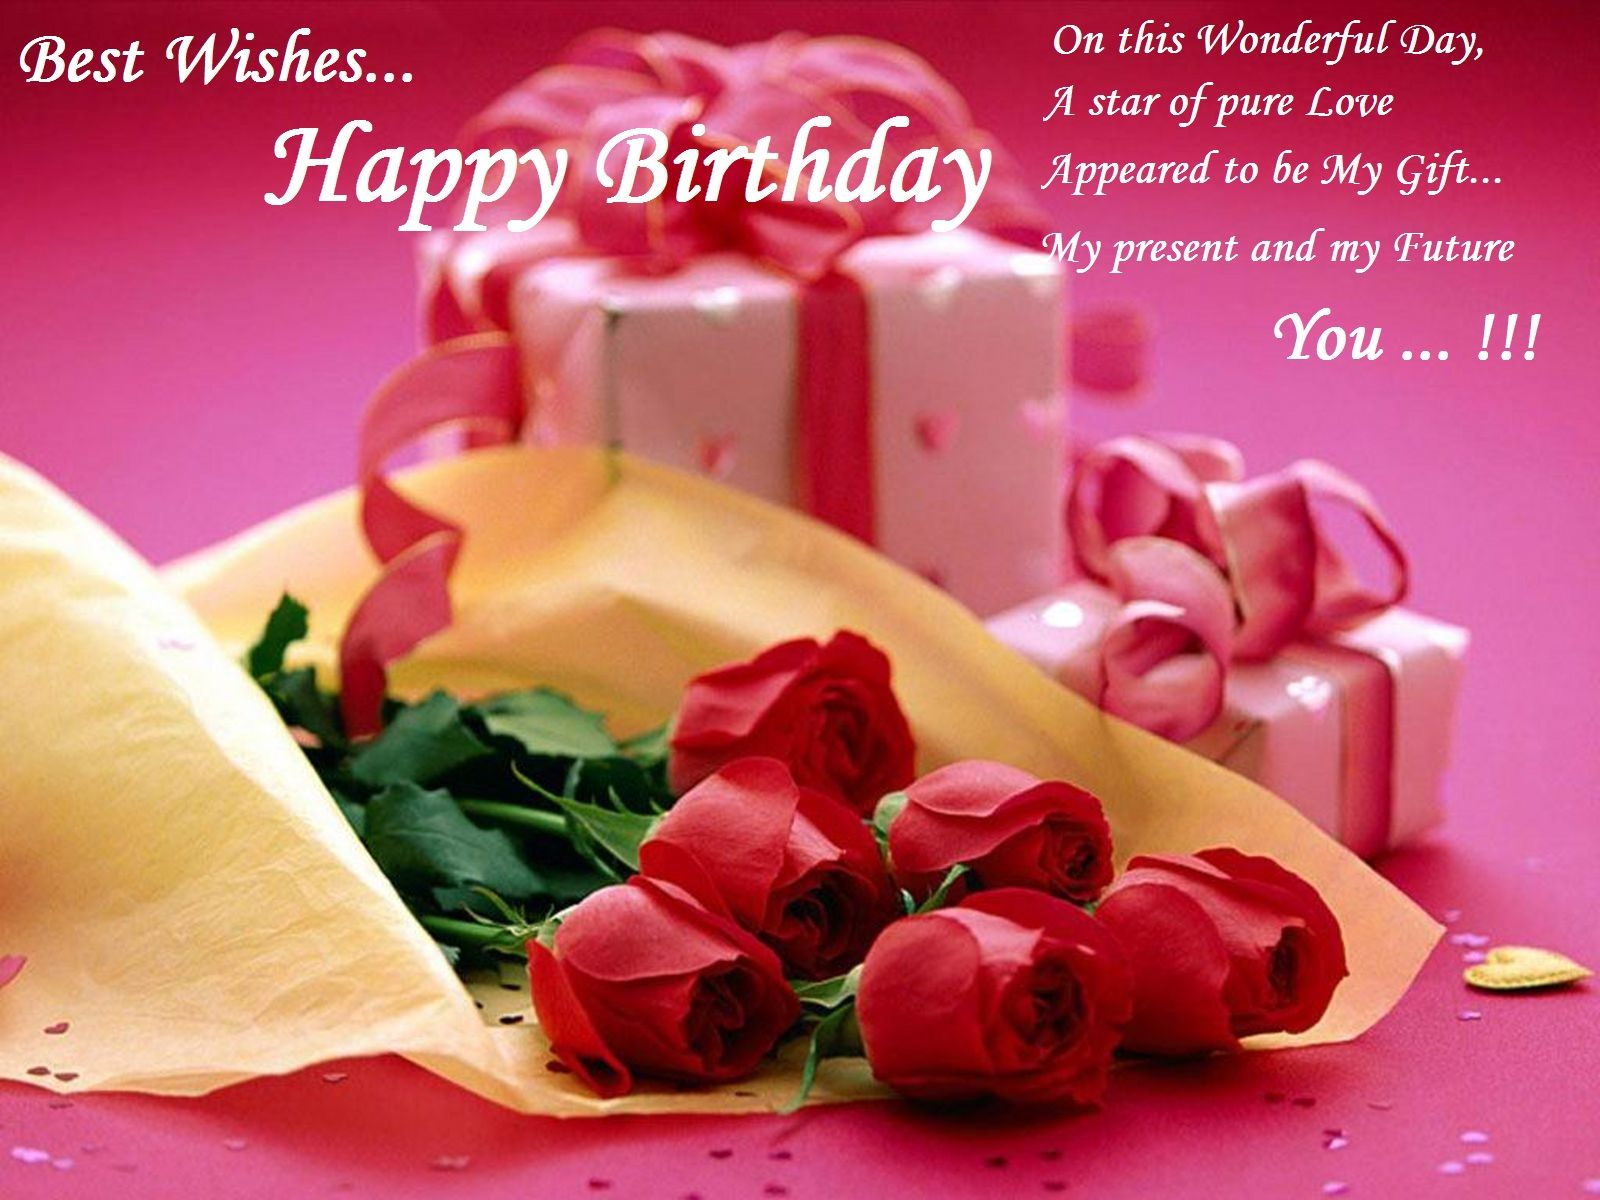 Best Wishes Happy Birthday Pictures Photos And Images For Facebook